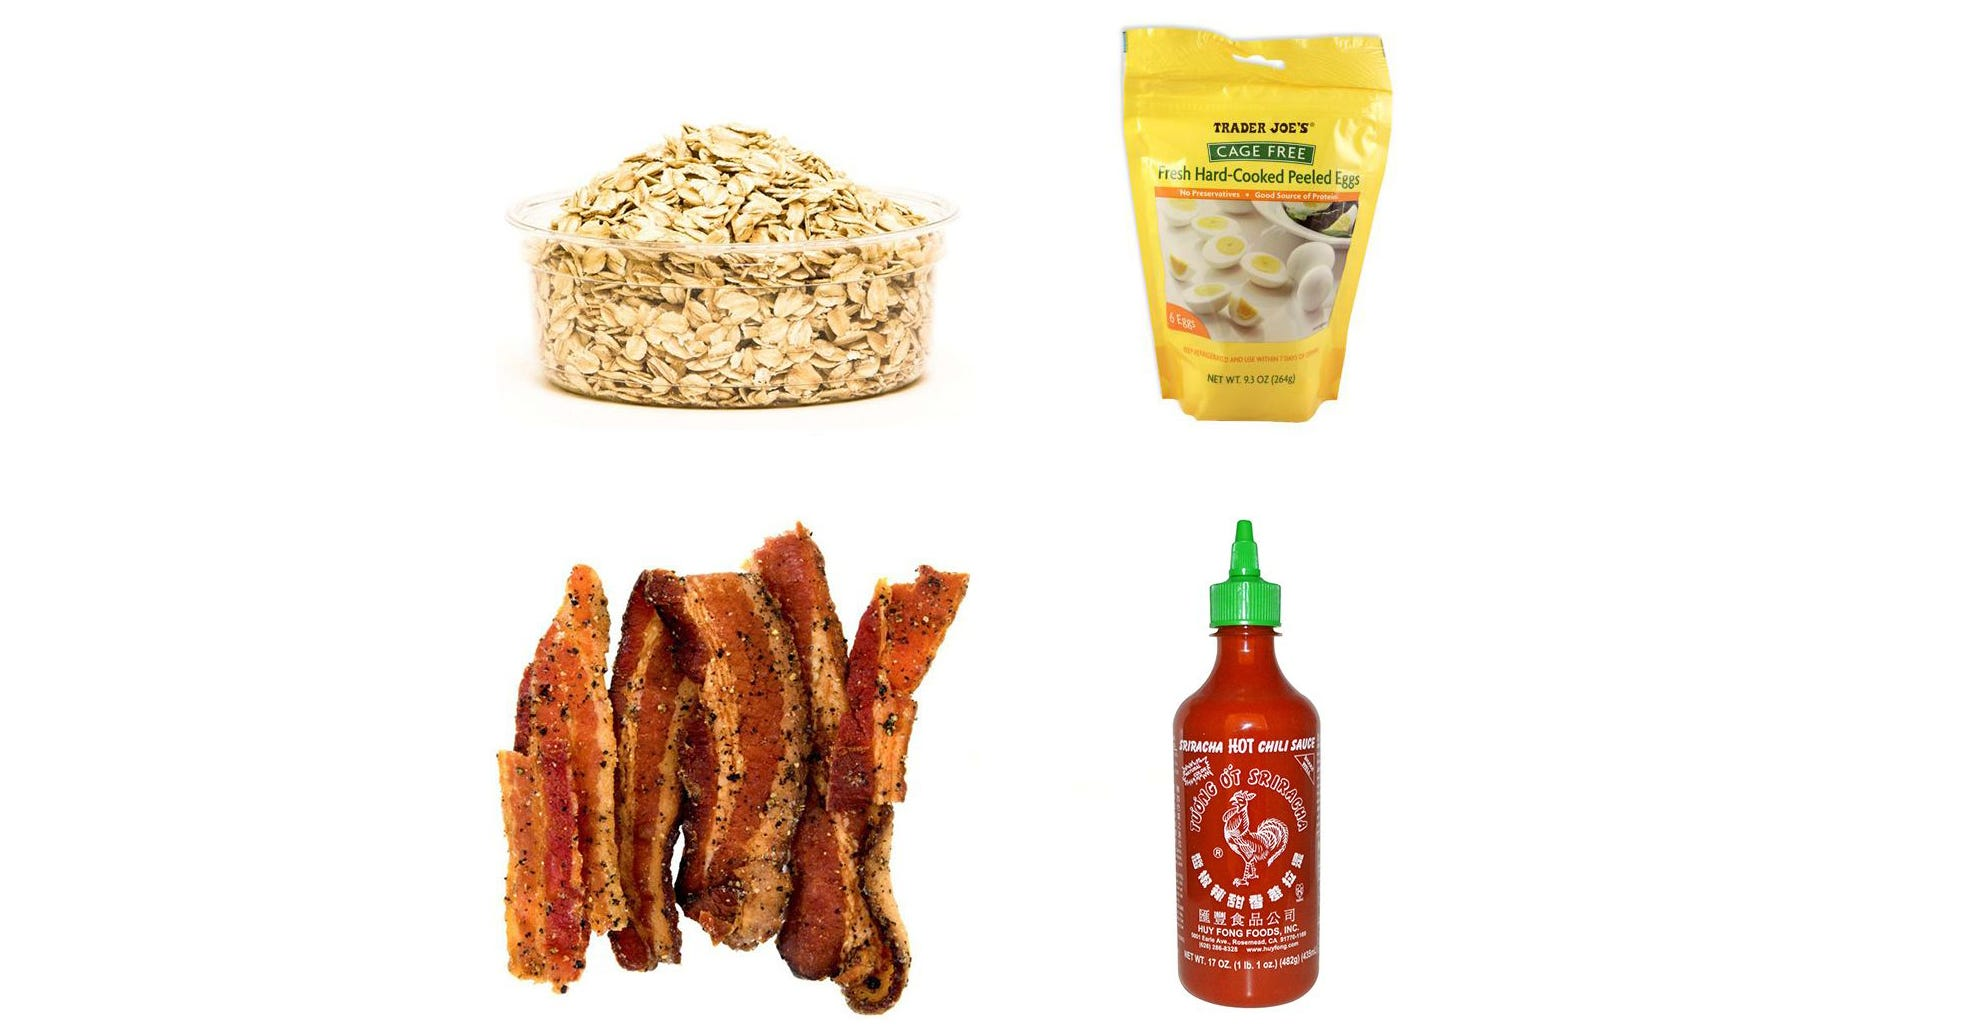 4 Easy Oatmeal Packet Hacks To Make Office Breakfasts Restaurant Quality